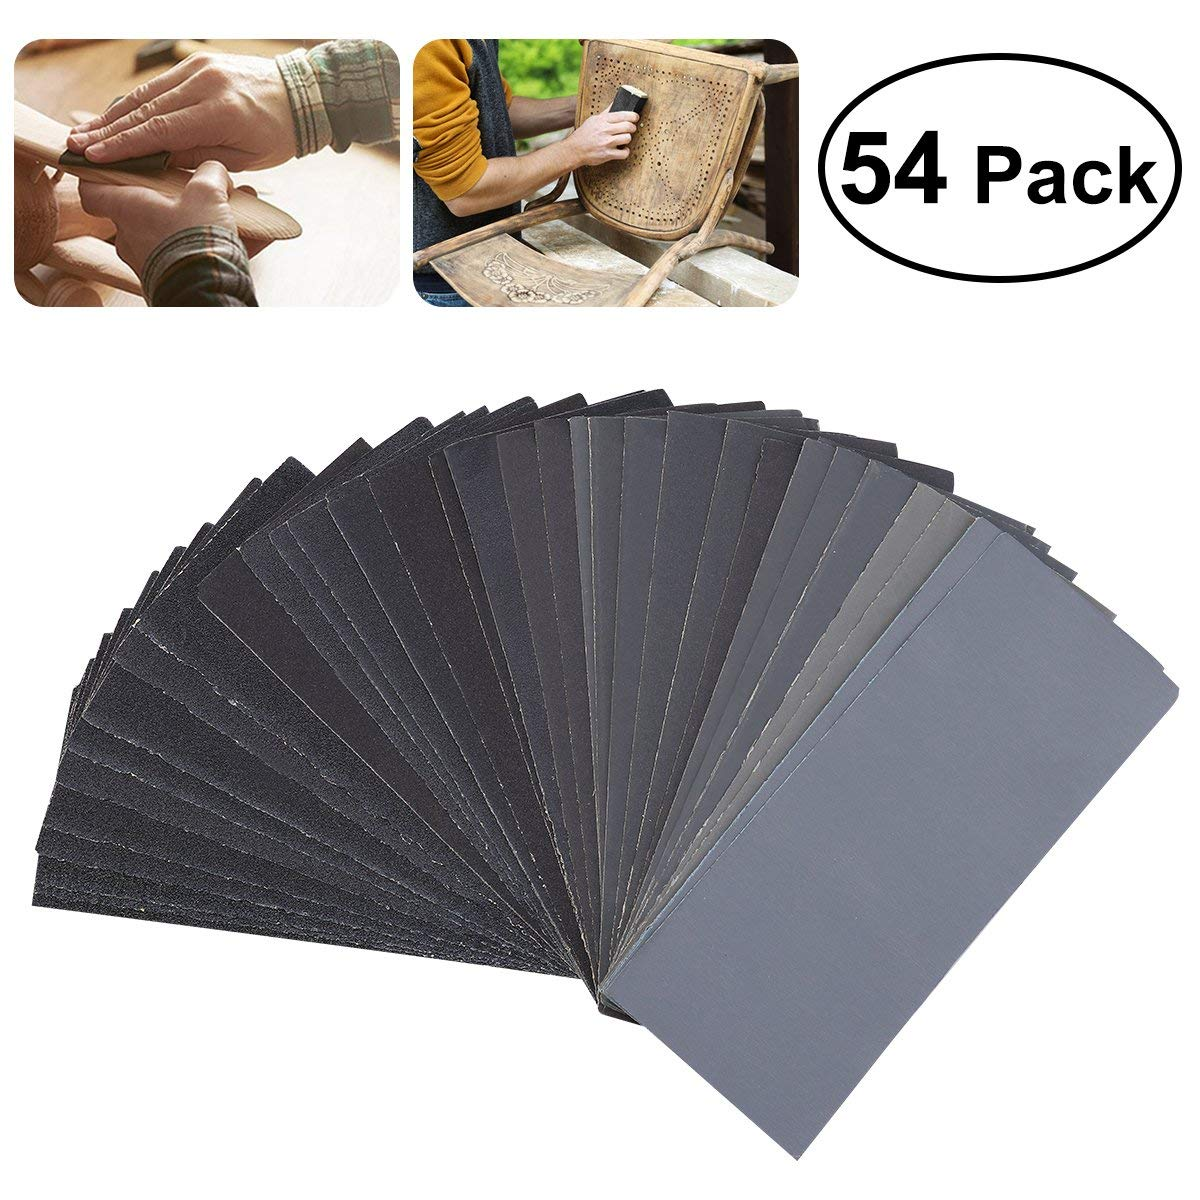 Hot sale 54pcs 60 to 3000 Grit Sandpaper Assortment Wet Dry Sand Paper for Automotive Sanding Wood water dry sanding paper sandpaper w3 5 w7 w10 w14 w20 w28 w40 w50 w63 w70